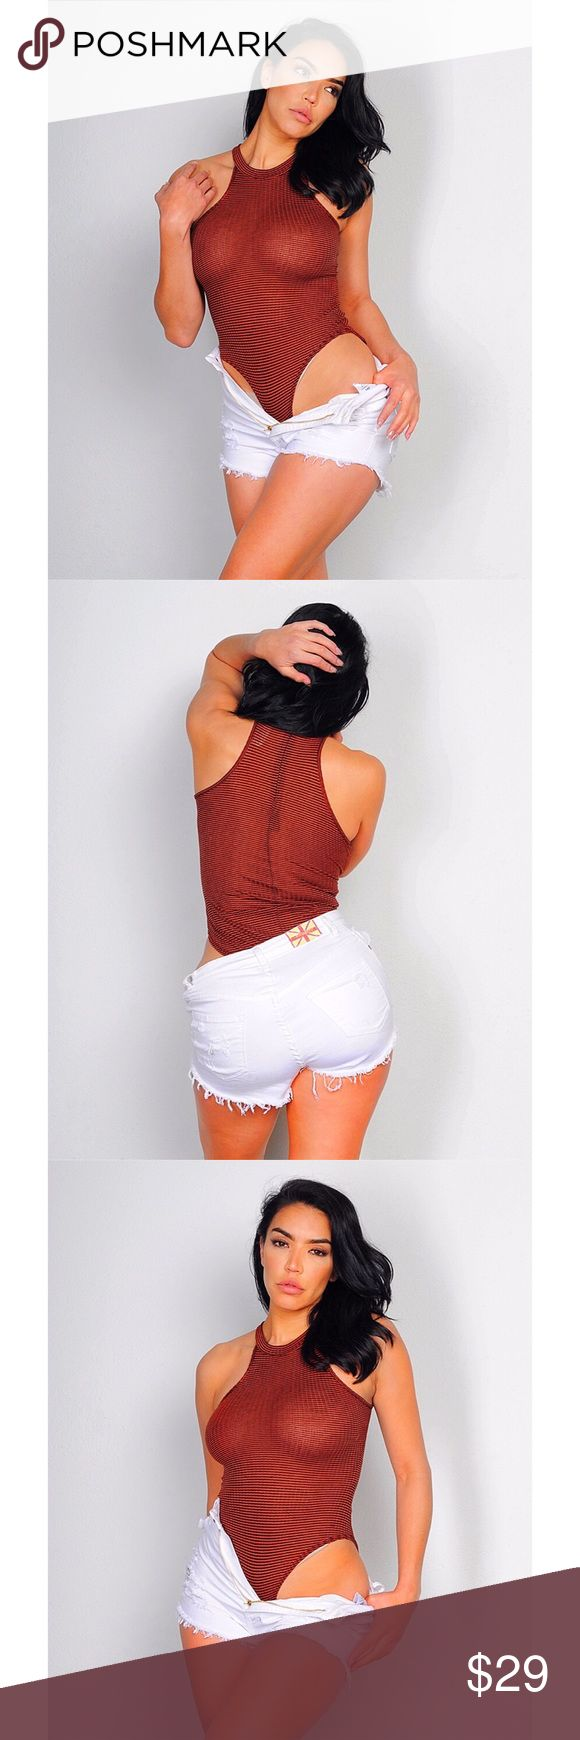 Rust BodySuit Rust BodySuit  68% Polyester 27% Rayon 5% Spandex Made in USA Tops Blouses